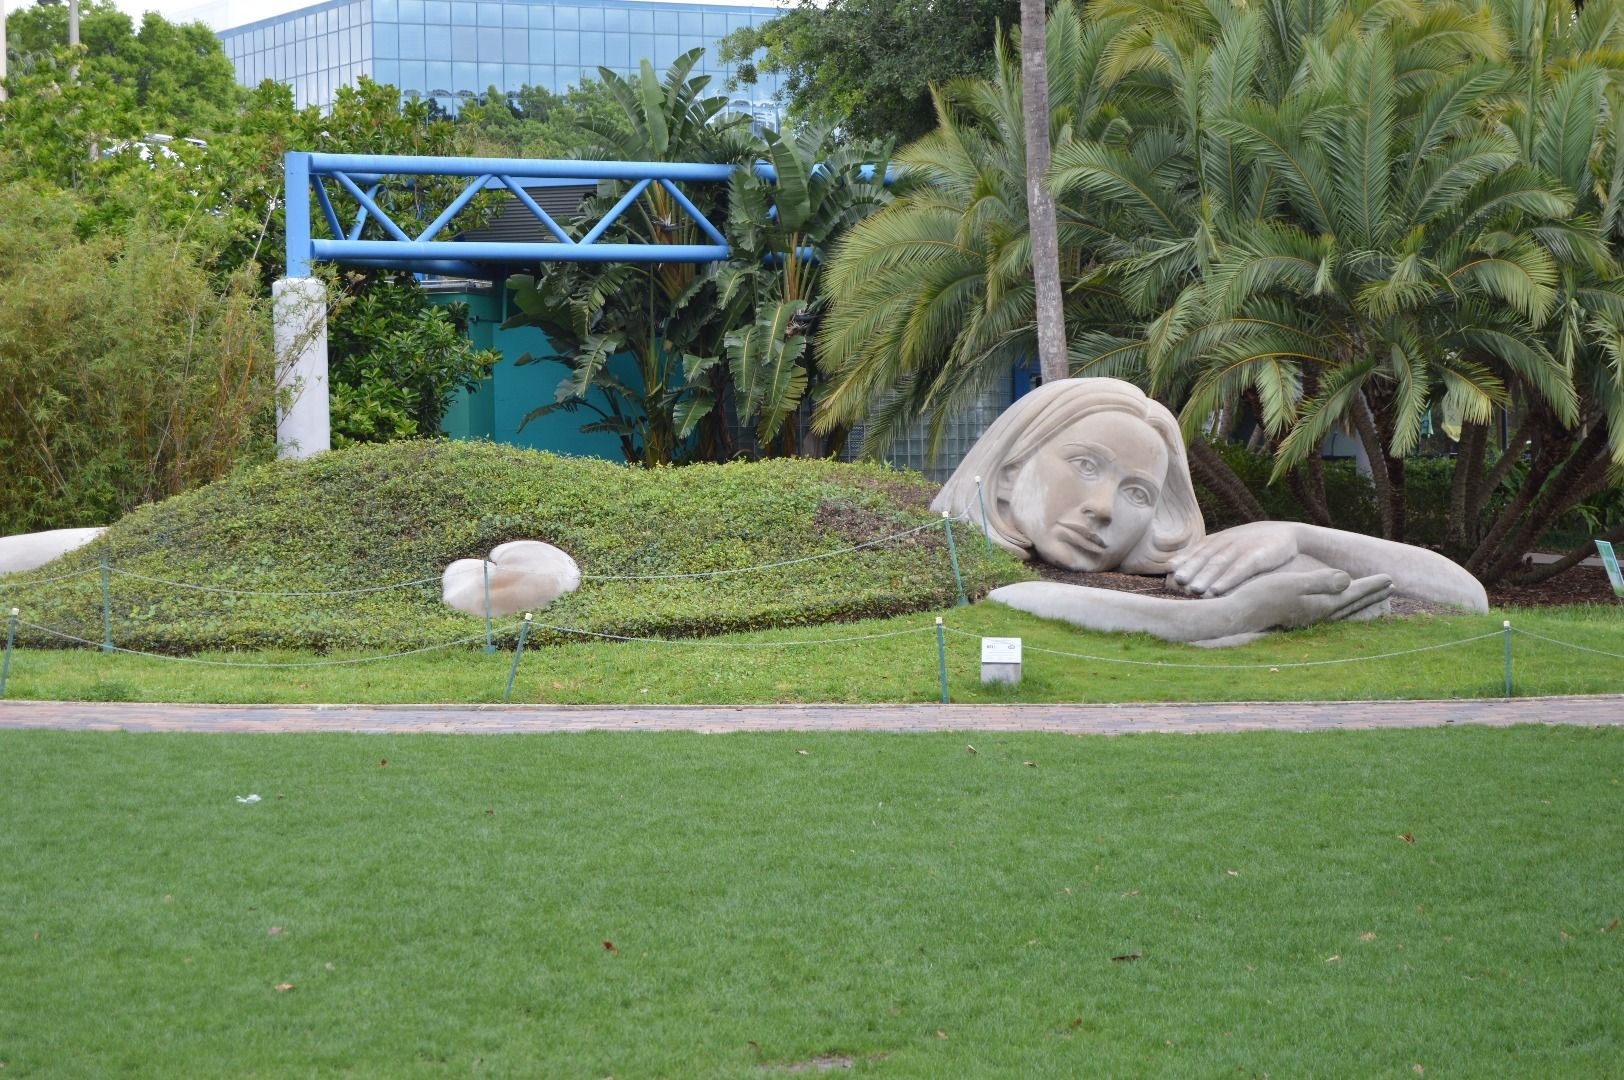 Statue of giant woman laying under blanket of earth